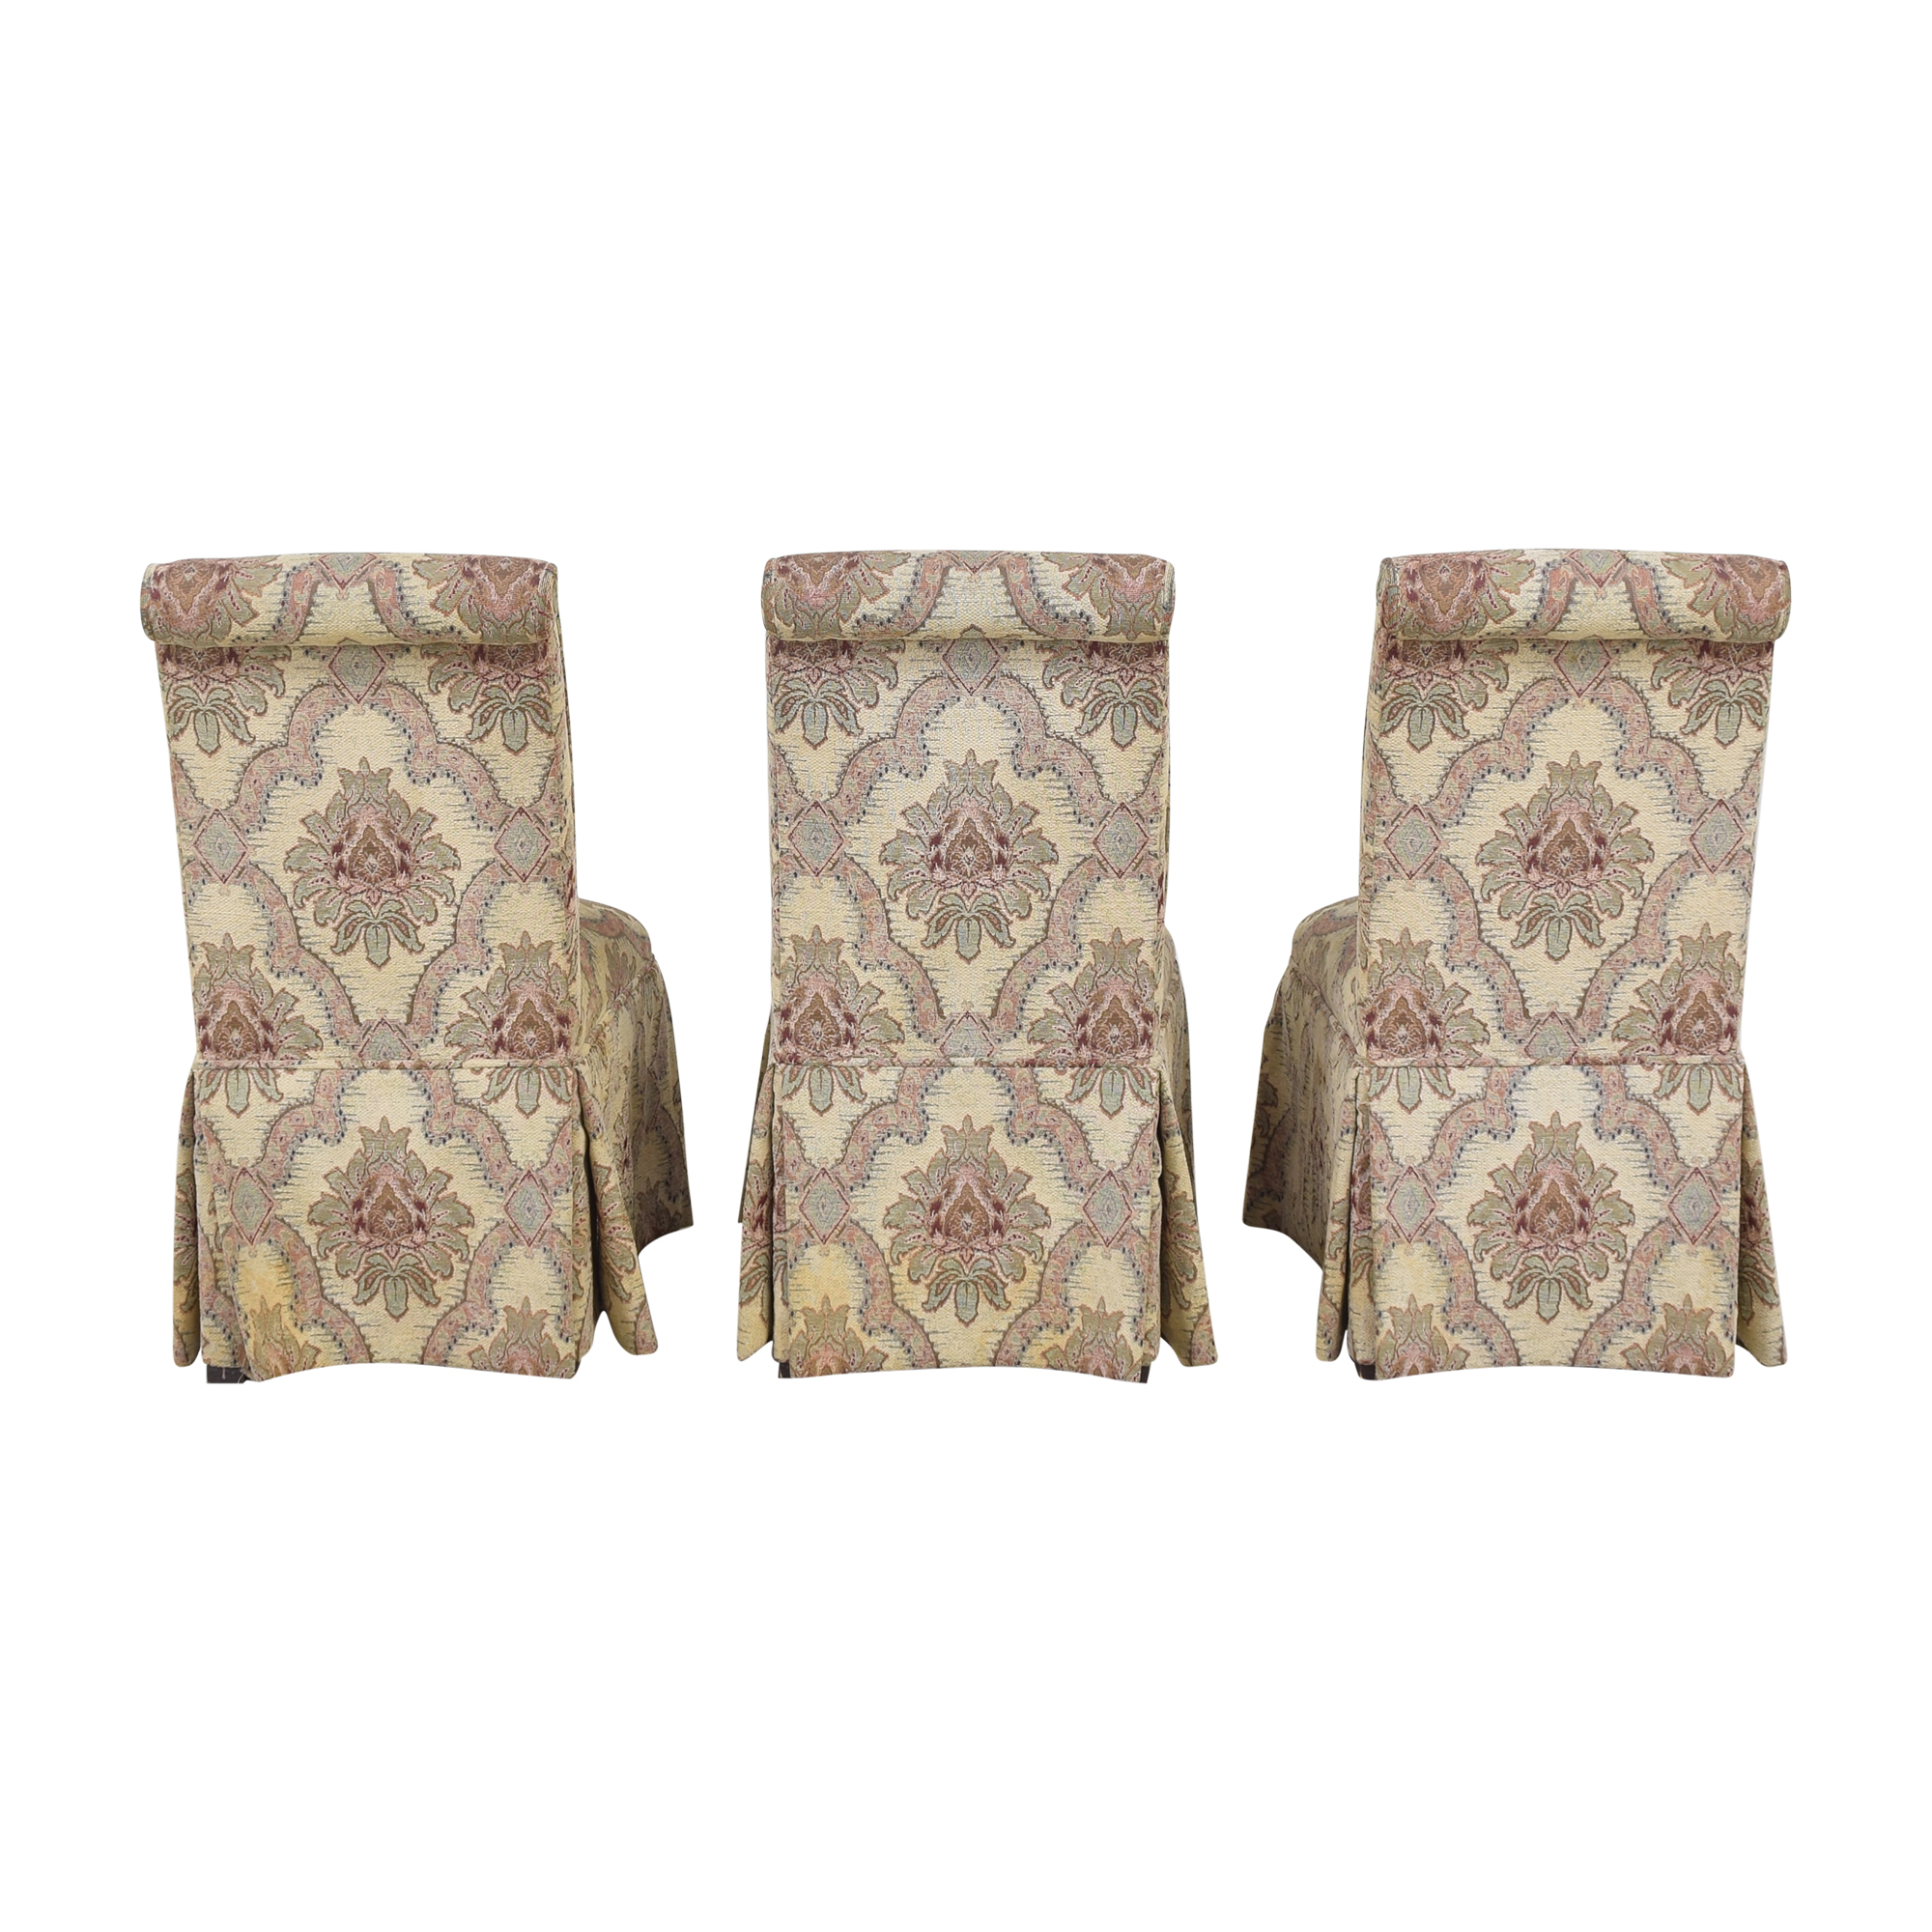 Designmaster Furniture Designmaster Furniture Custom Dining Chairs